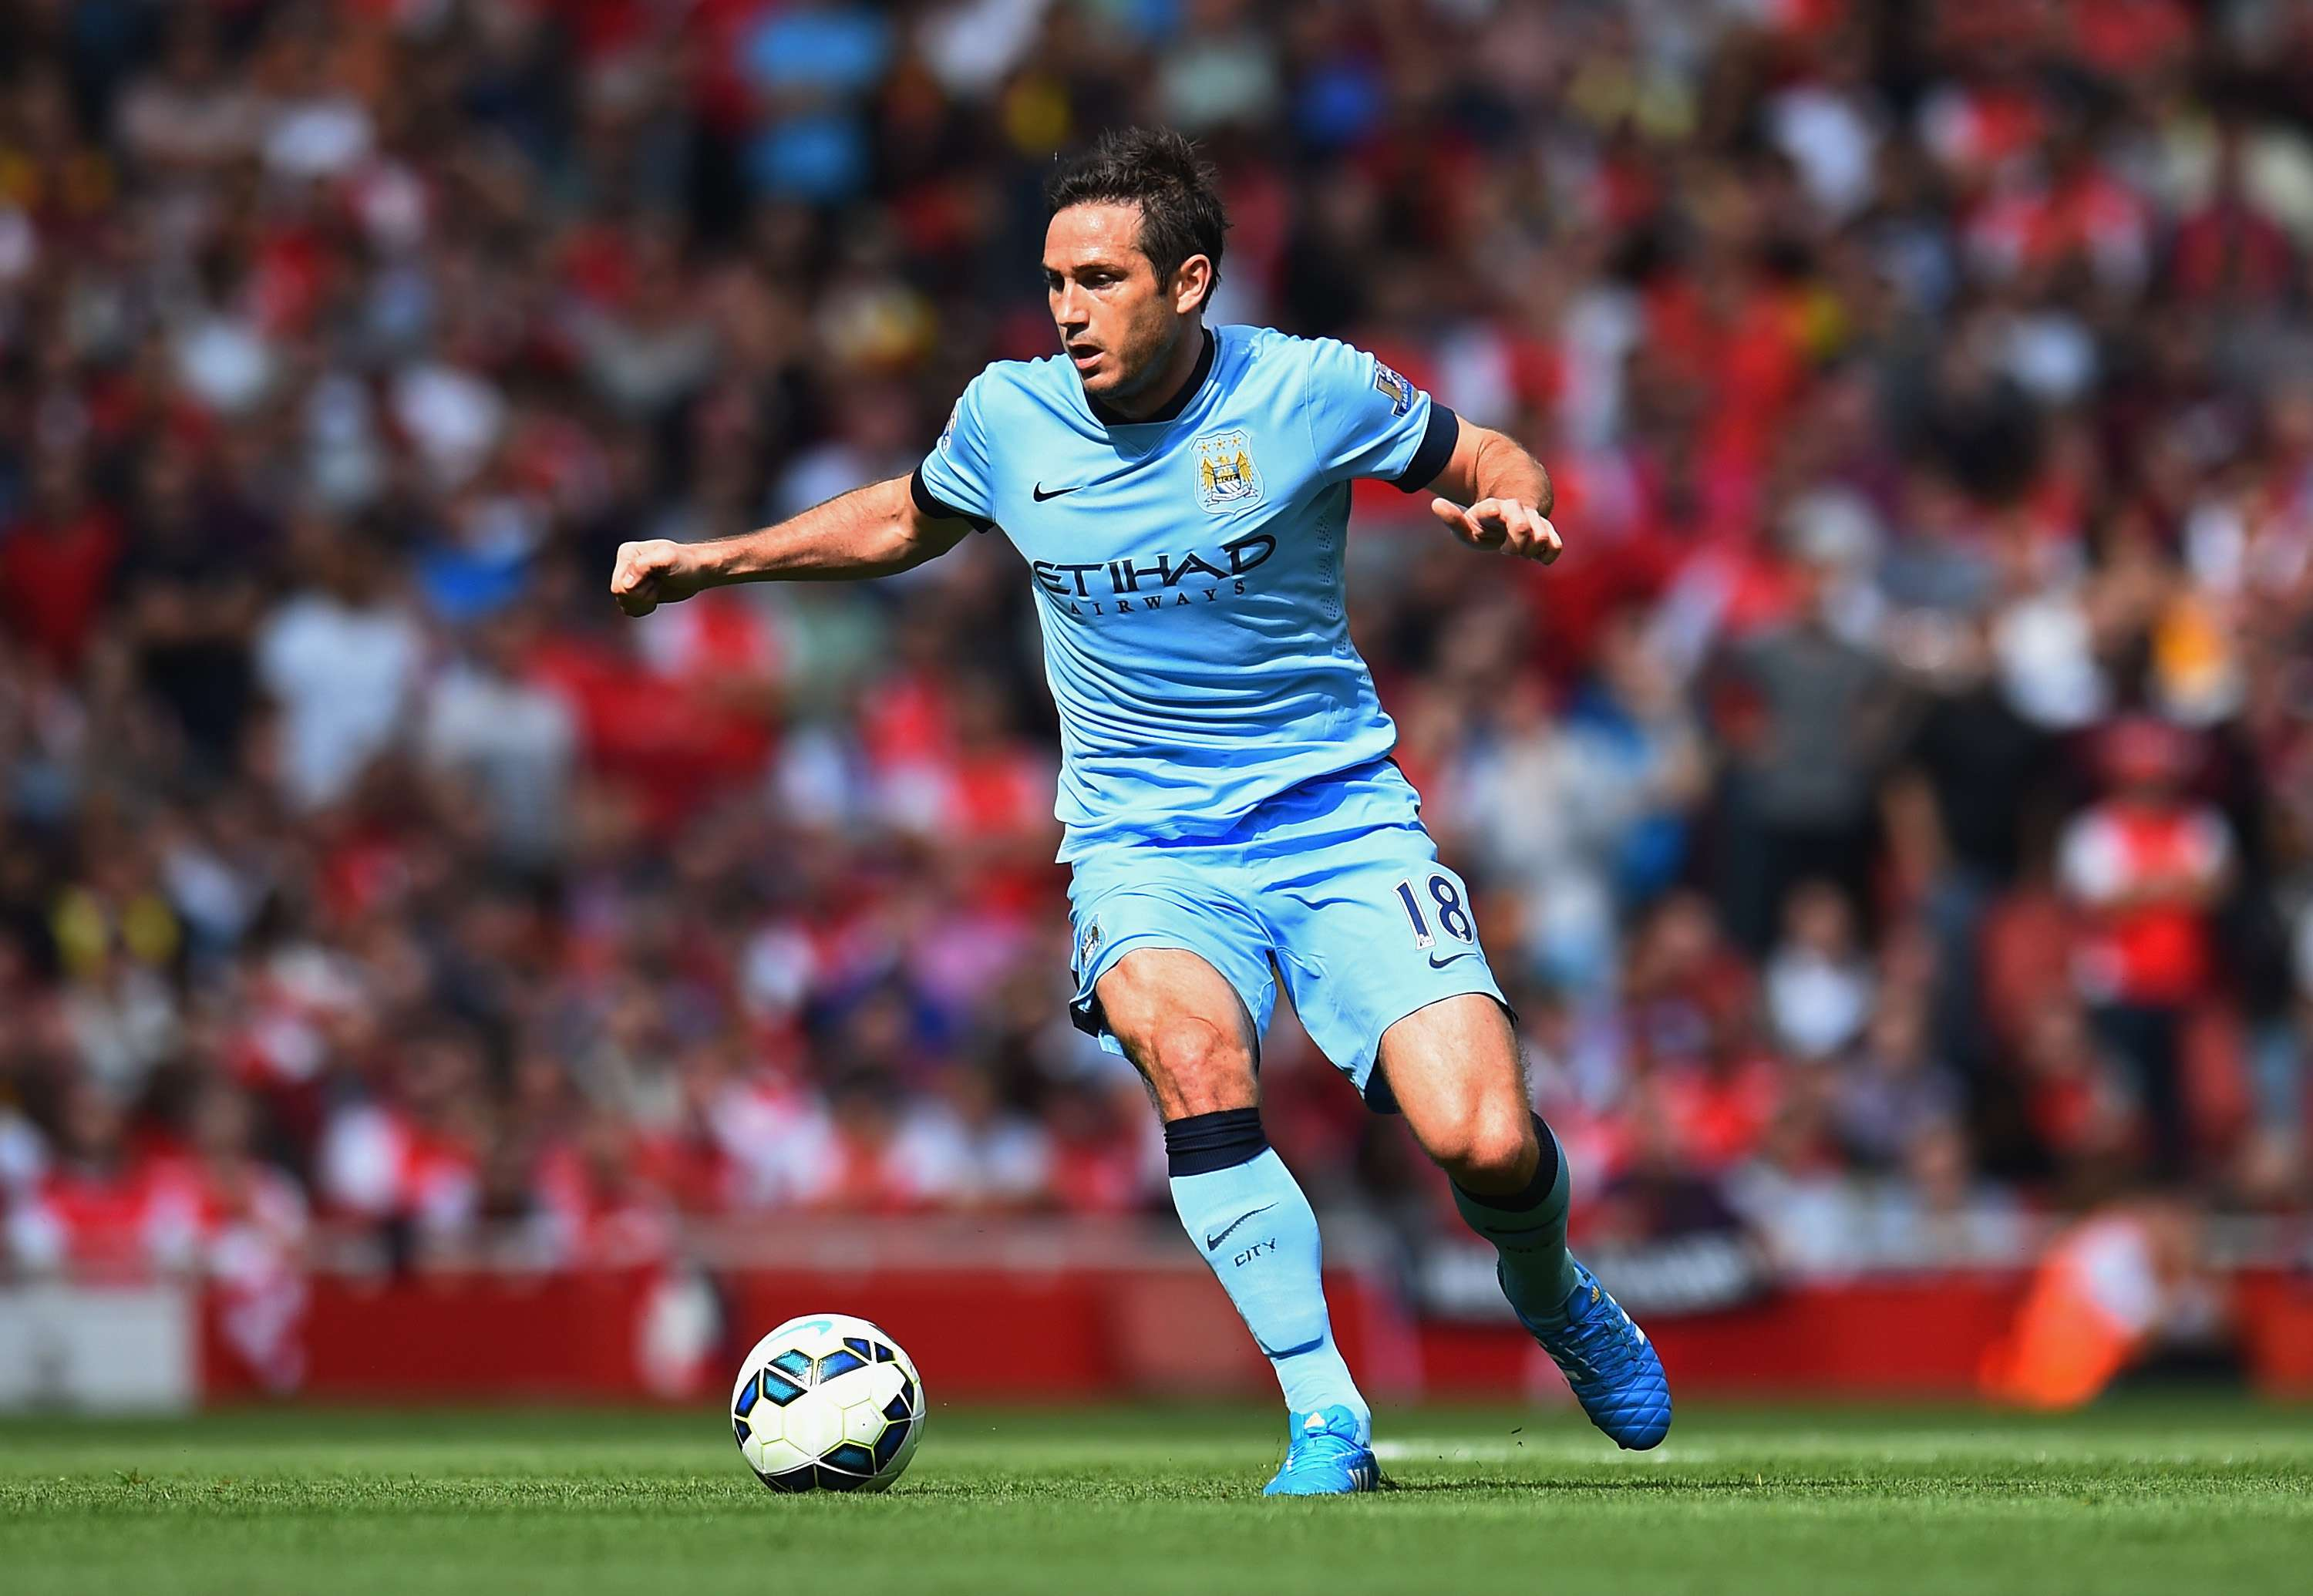 Lampard marcou contra o Chelsea durante empate com o City Foto: Shaun Botterill/Getty Images